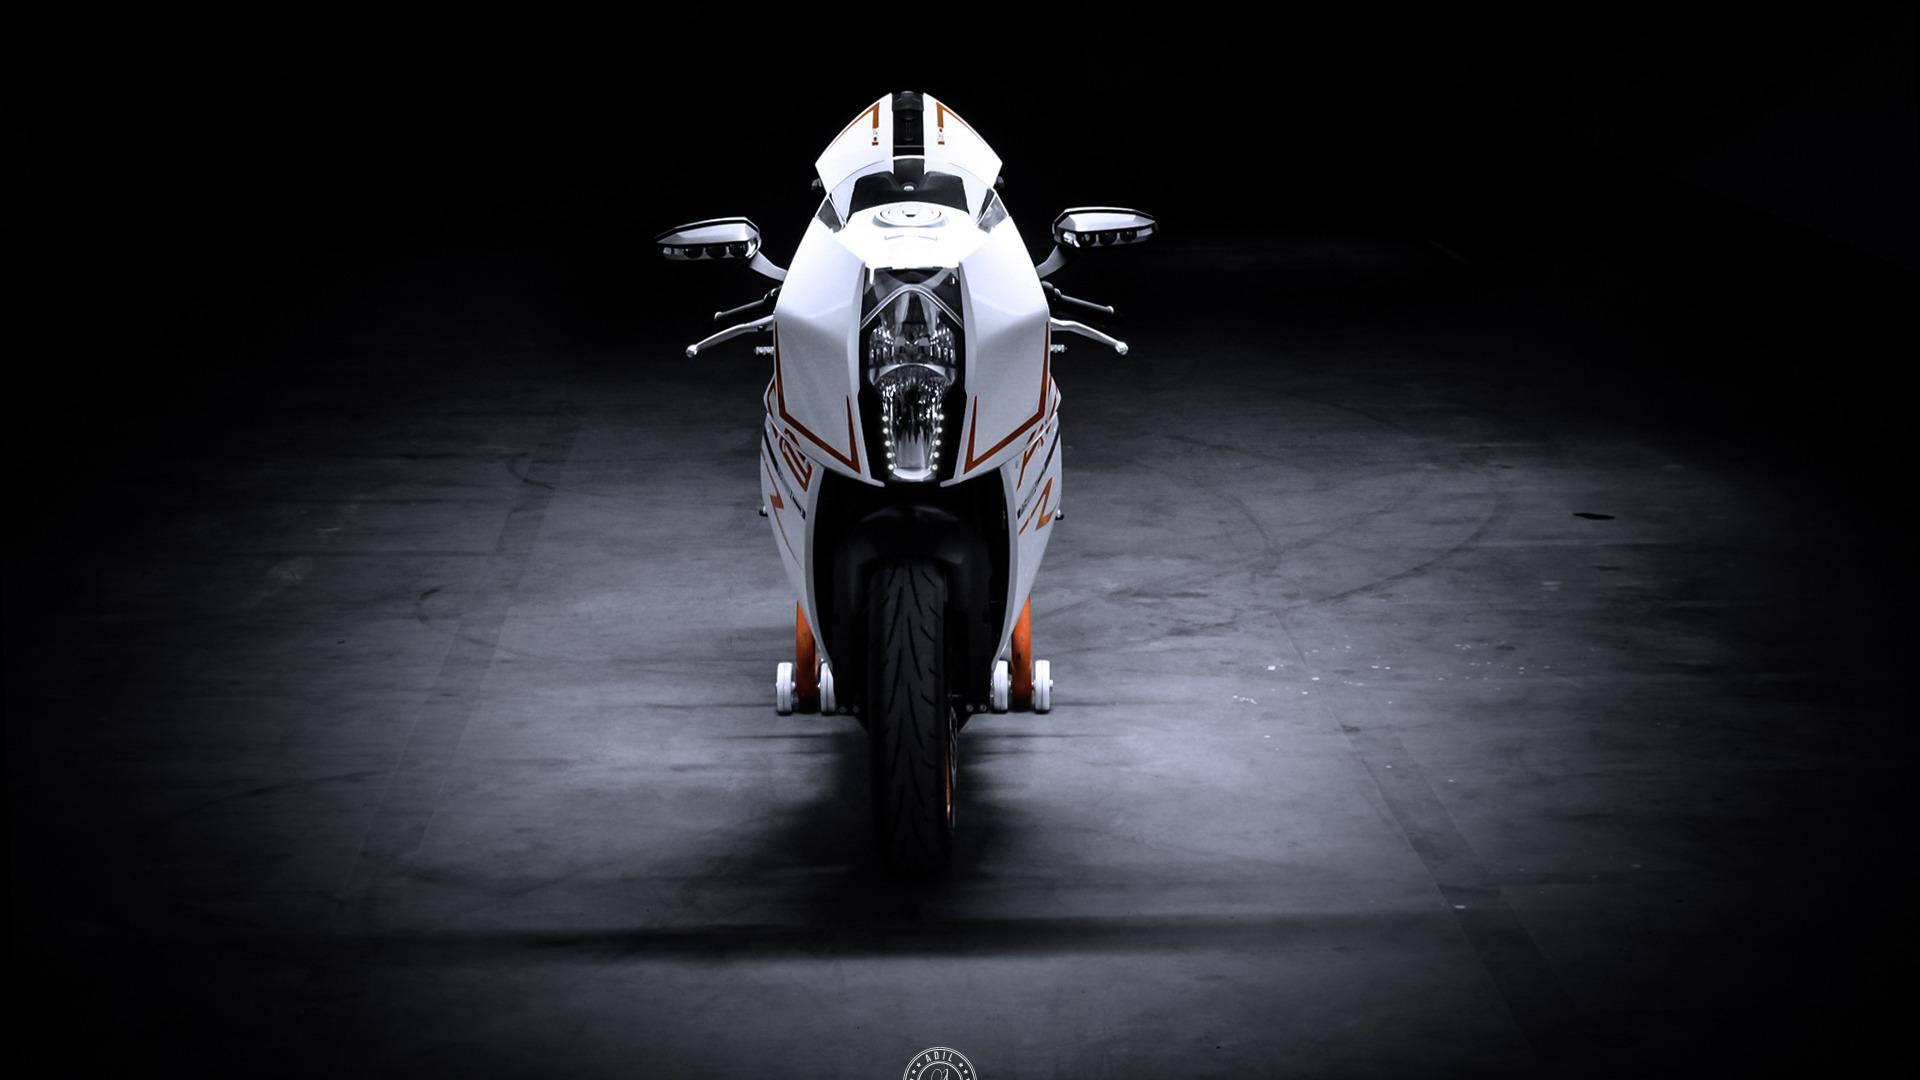 1920x1080 - KTM RC8 Wallpapers 30